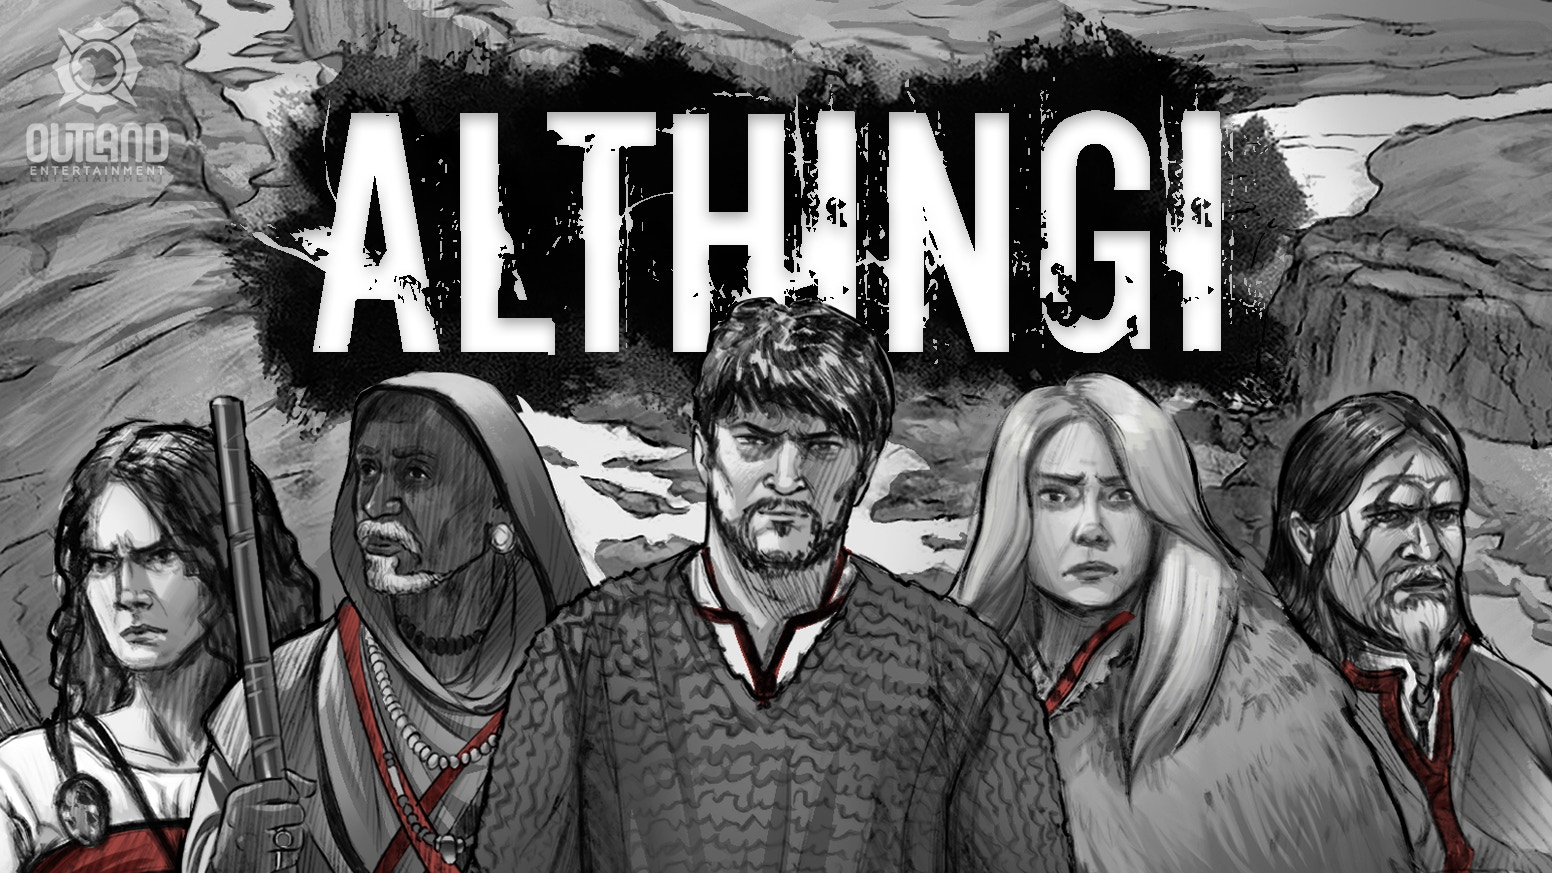 Althingi is a card game set in medieval Iceland. Take on the role of a powerful Icelandic Chieftain and vie for influence and power!